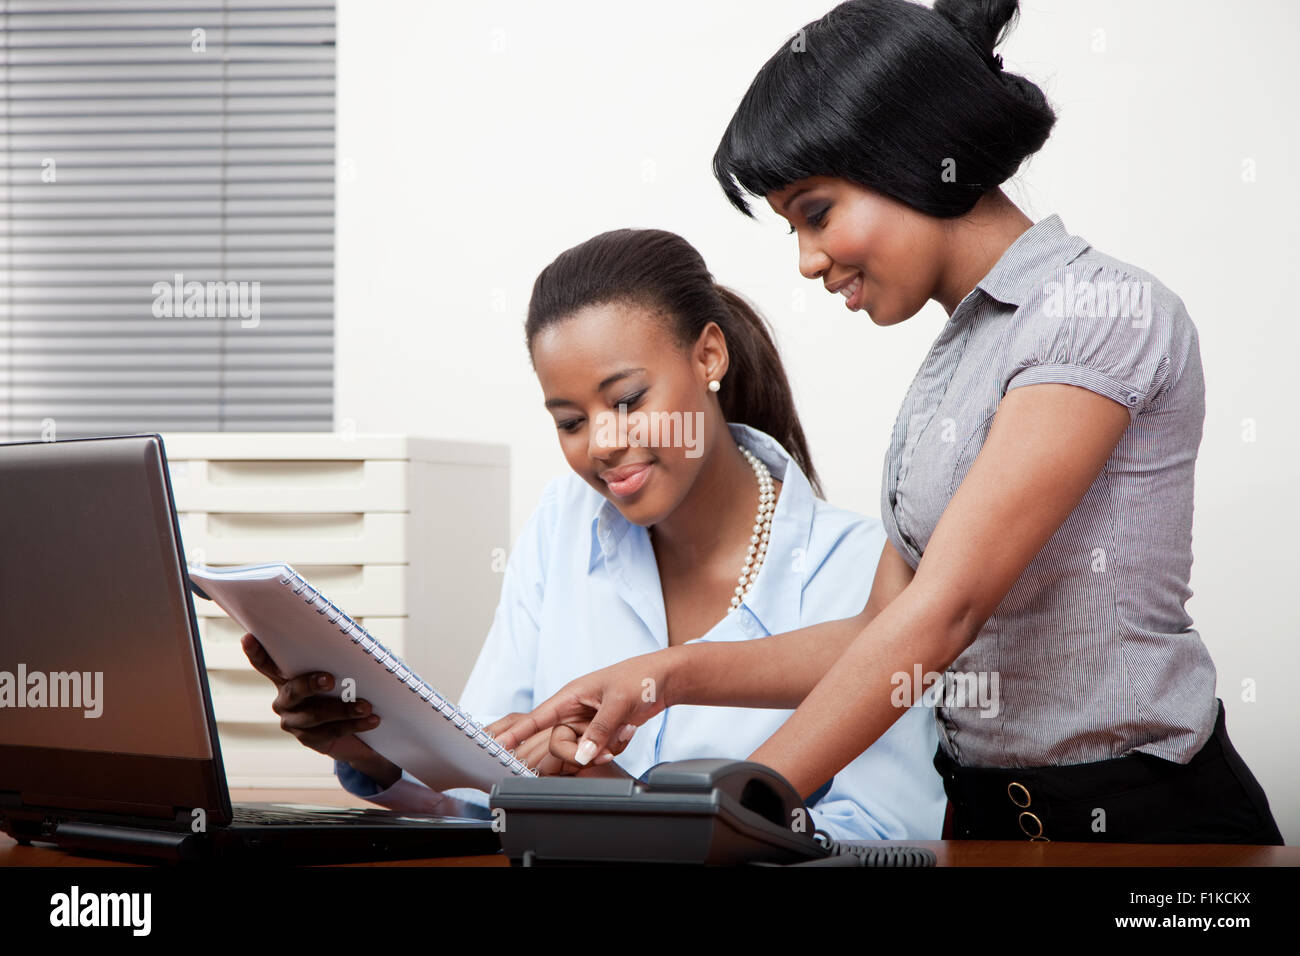 Two Black Women Working Together At An Office Desk Stock